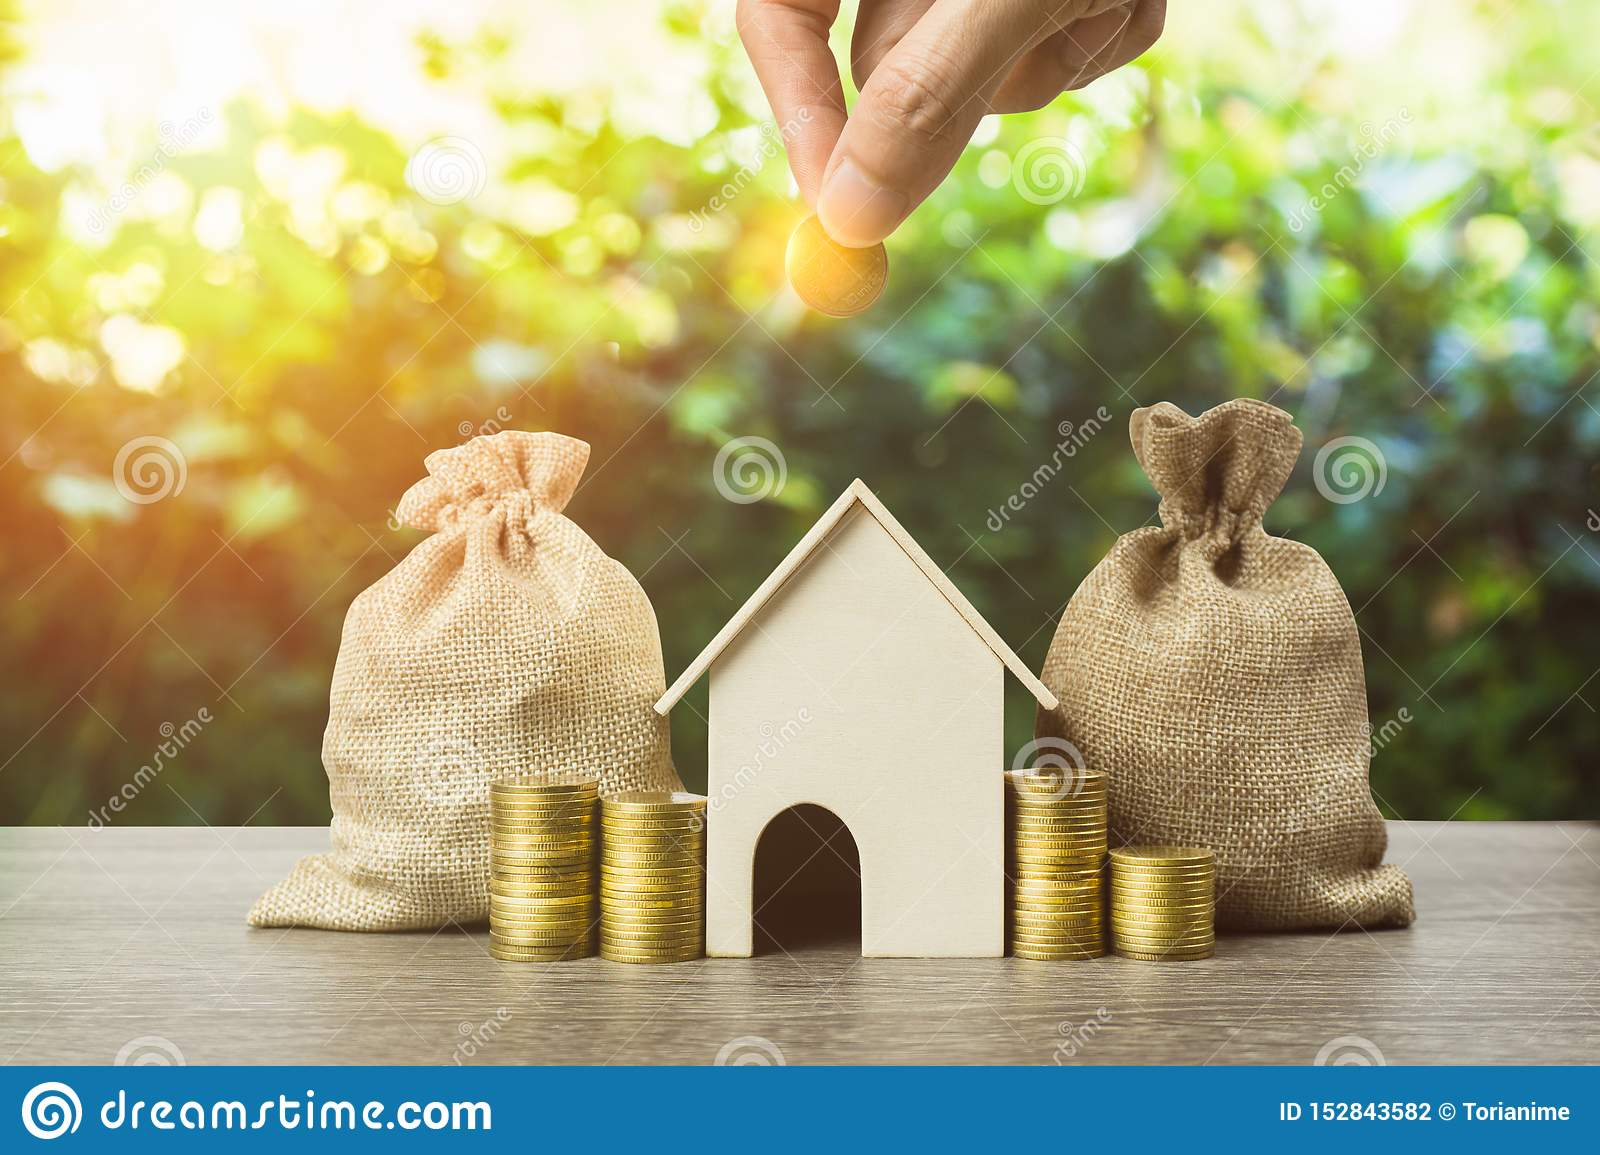 Saving money, home loan, mortgage, a property investment for future concept. A man hand putting money coin over small residence